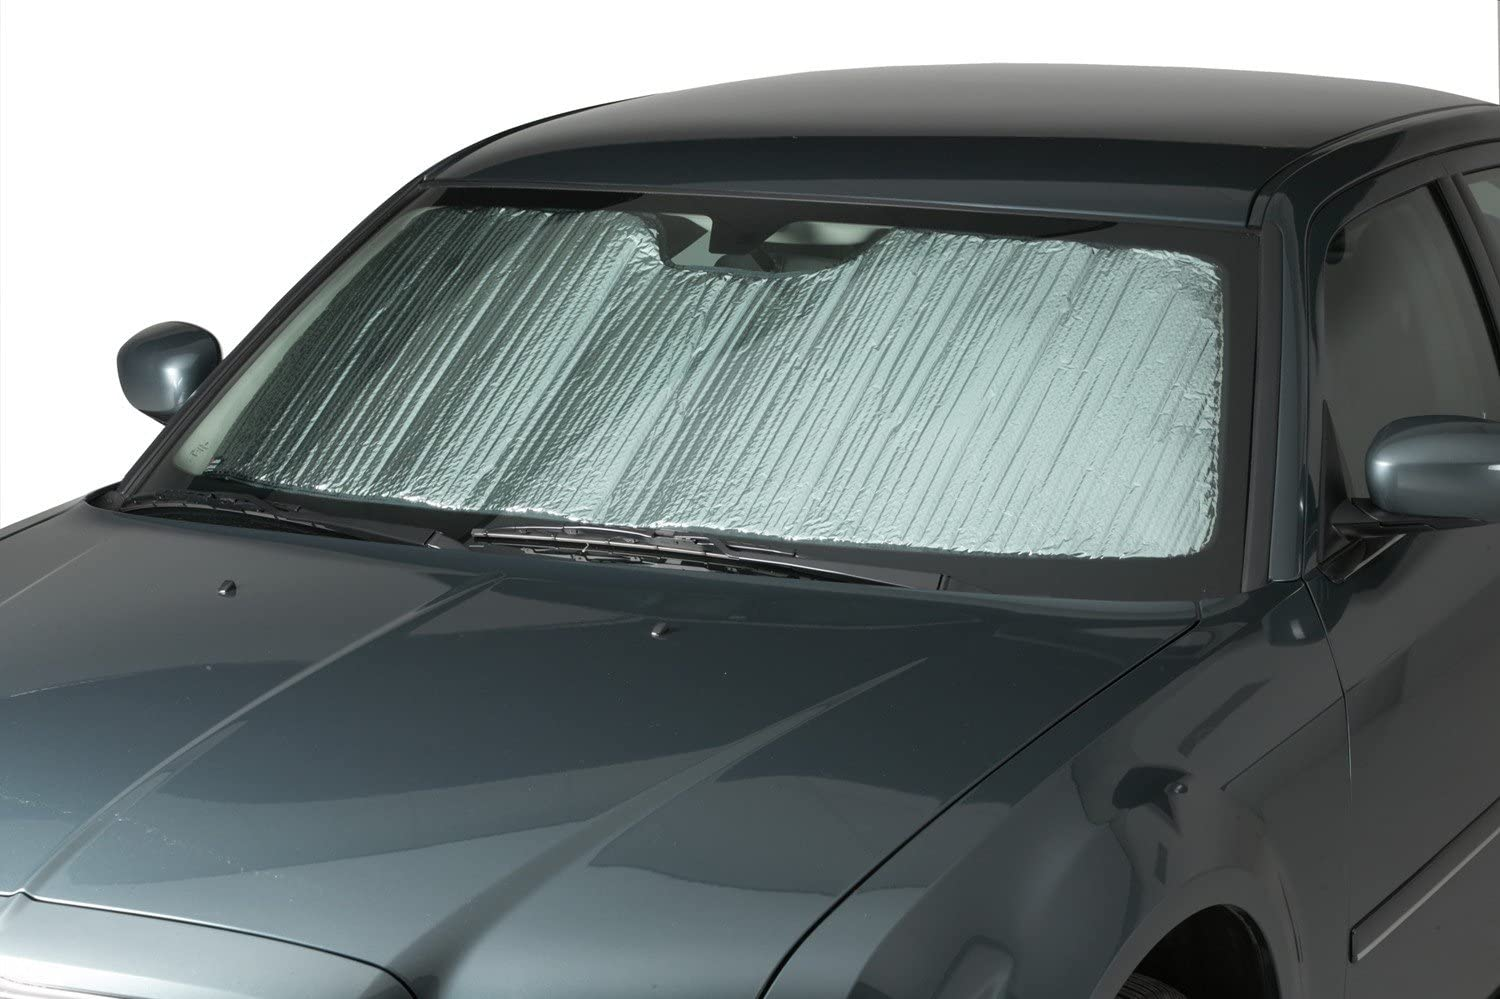 Silver Radiant Barrier Material Covercraft UR11178 Flex Shade Custom Fit Windshield Shade for Select Dodge Charger Models